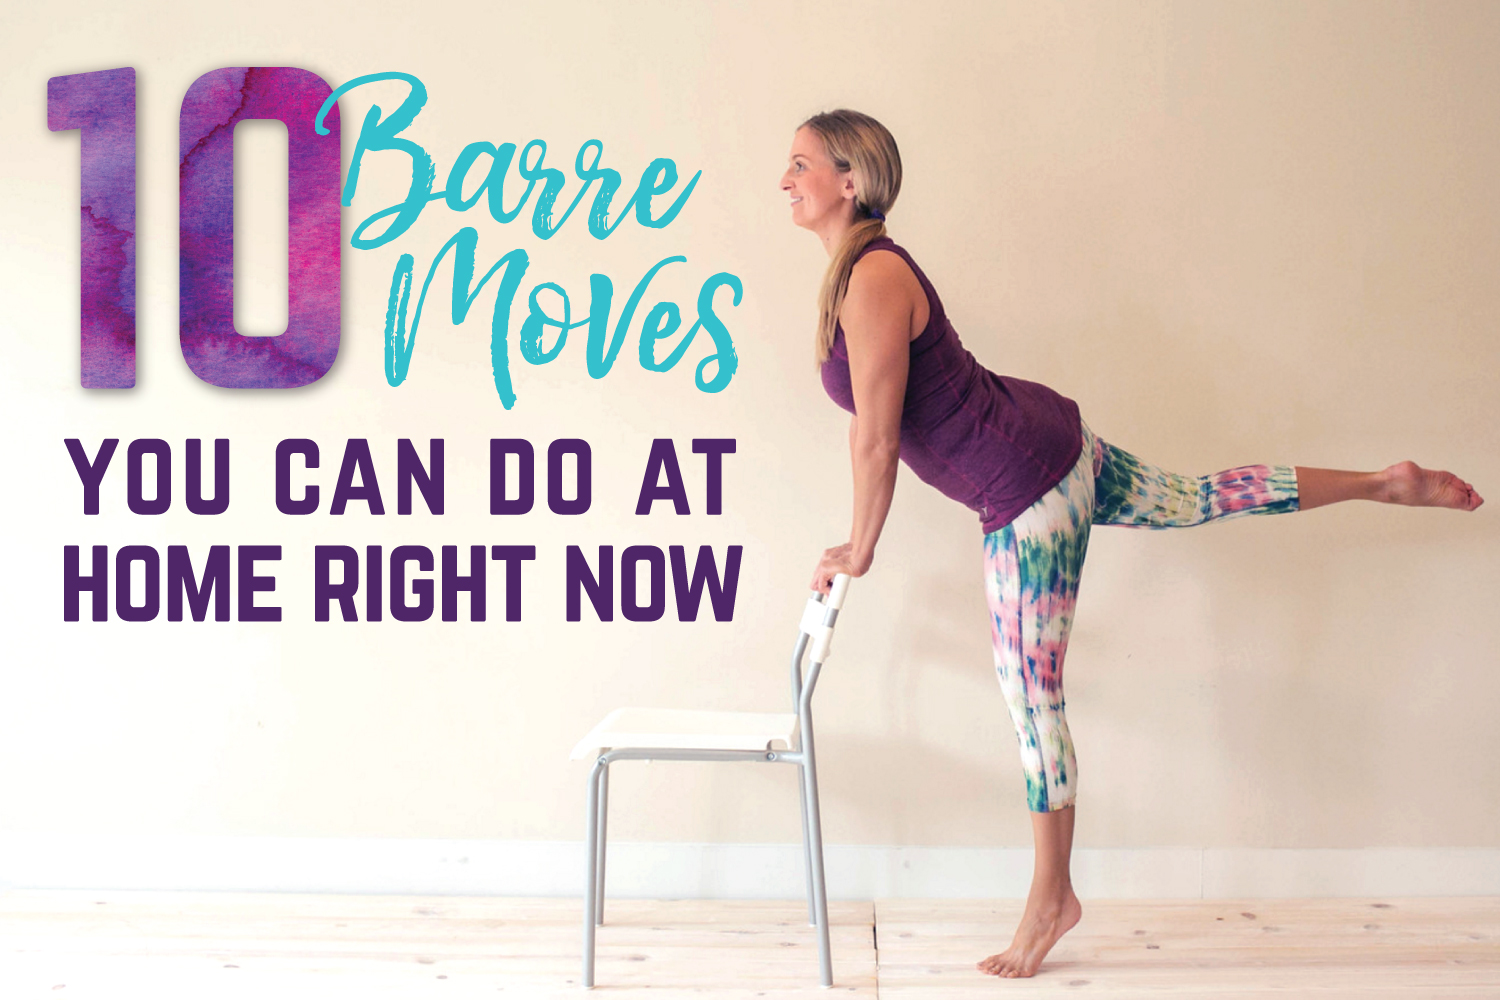 Pilates malibu chair buy malibu chair pilates combo - 10 Barre Moves You Can Do At Home Right Now